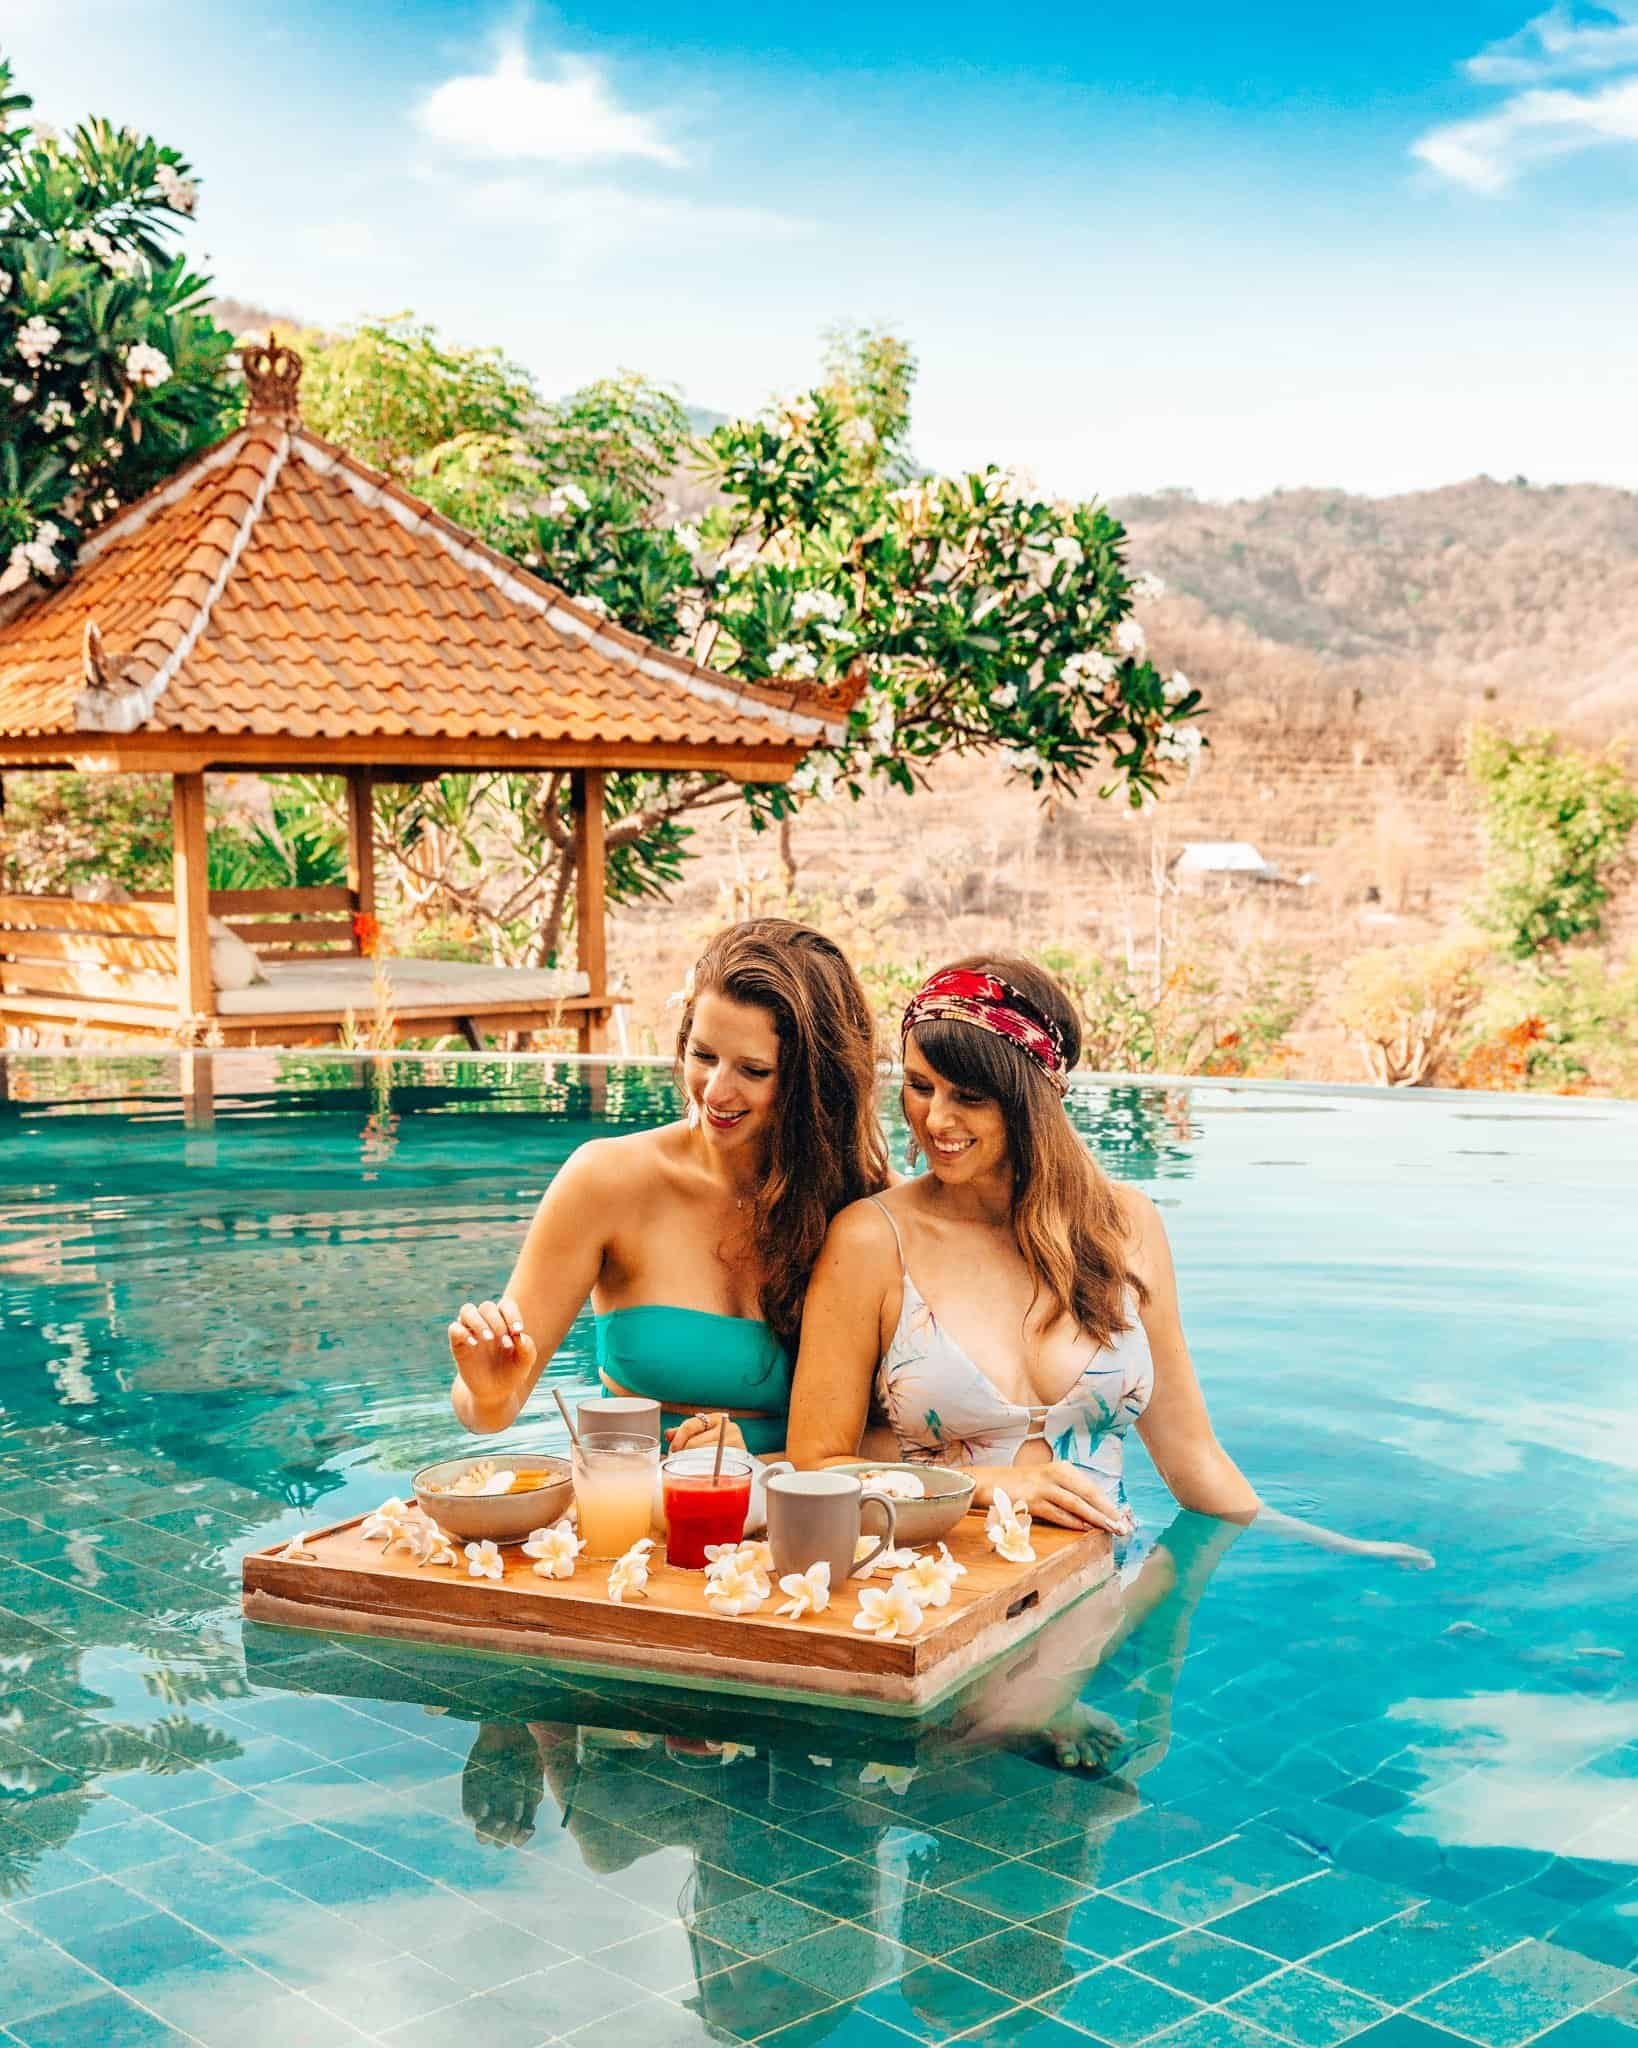 Floating Breakfast with @travelwithtalia at Sumberkima Hill, Bali - The Next Trip